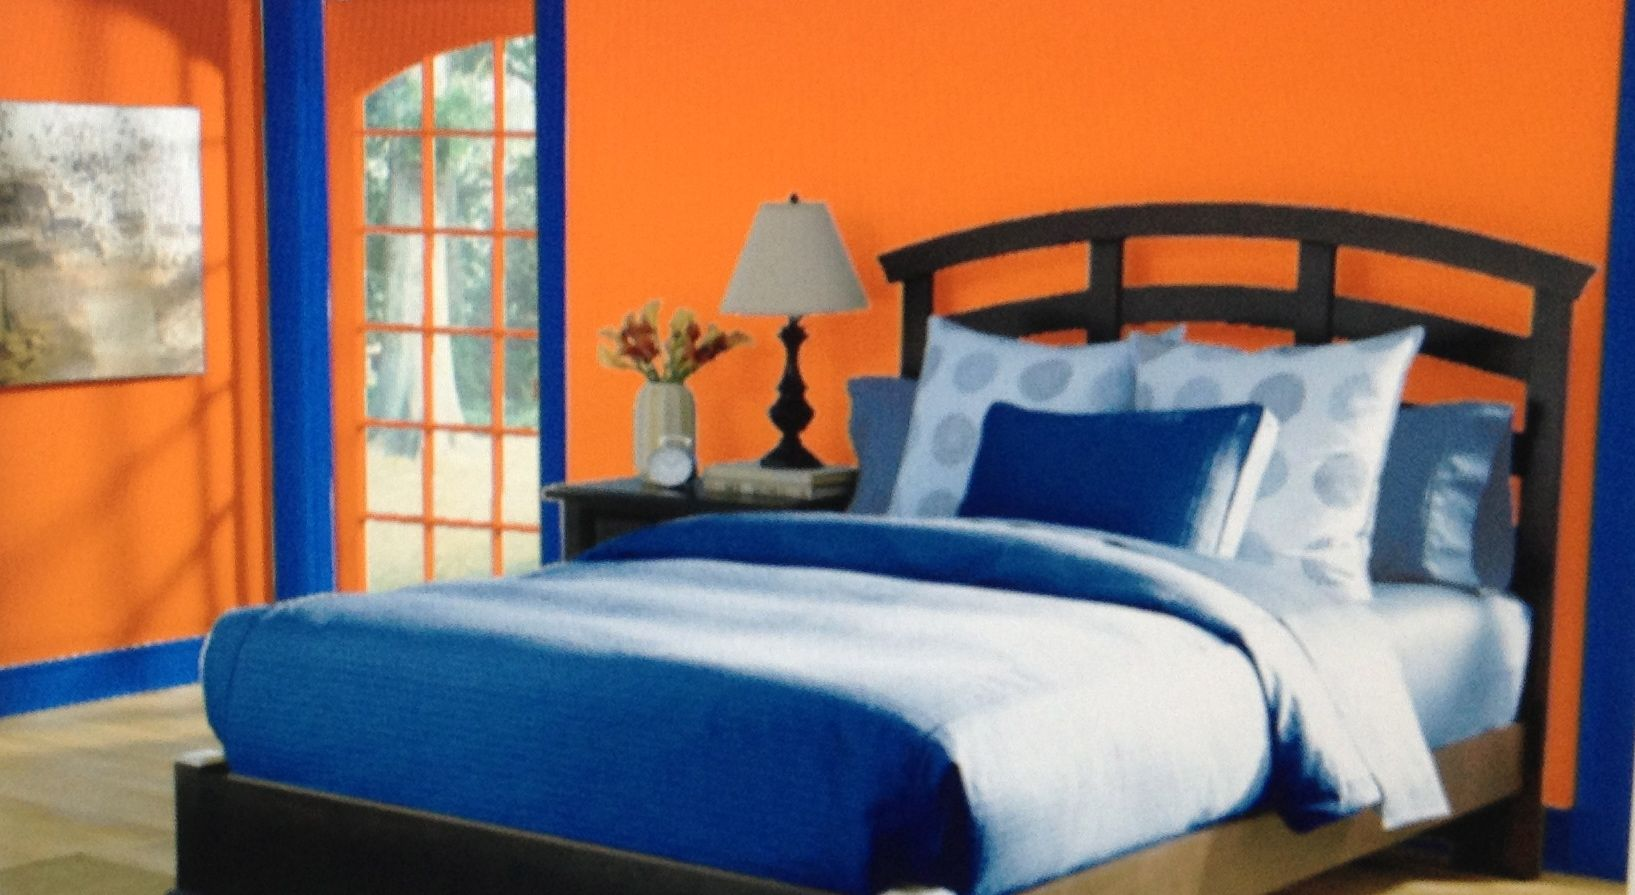 This is a complementary bedroom with a color scheme of Together interiors